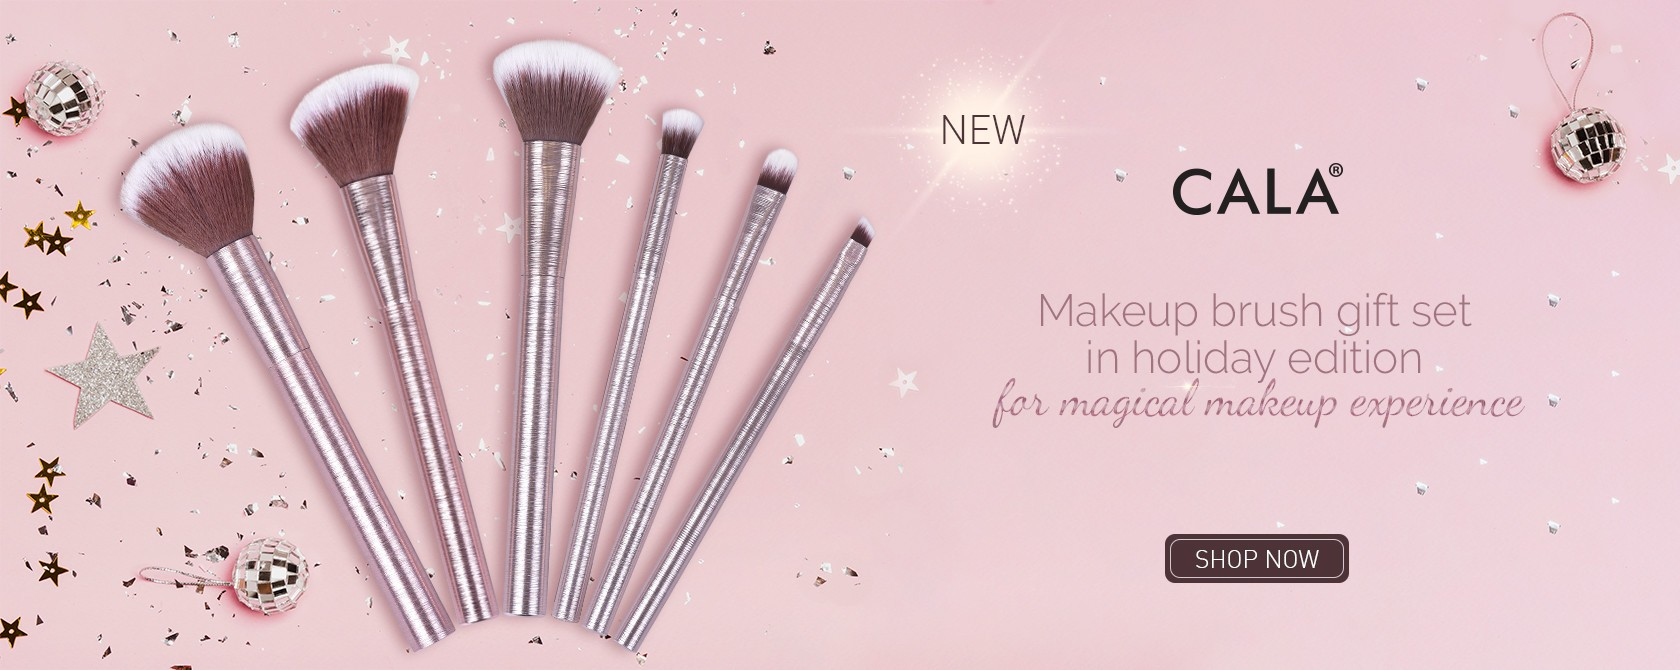 cala makeup brush